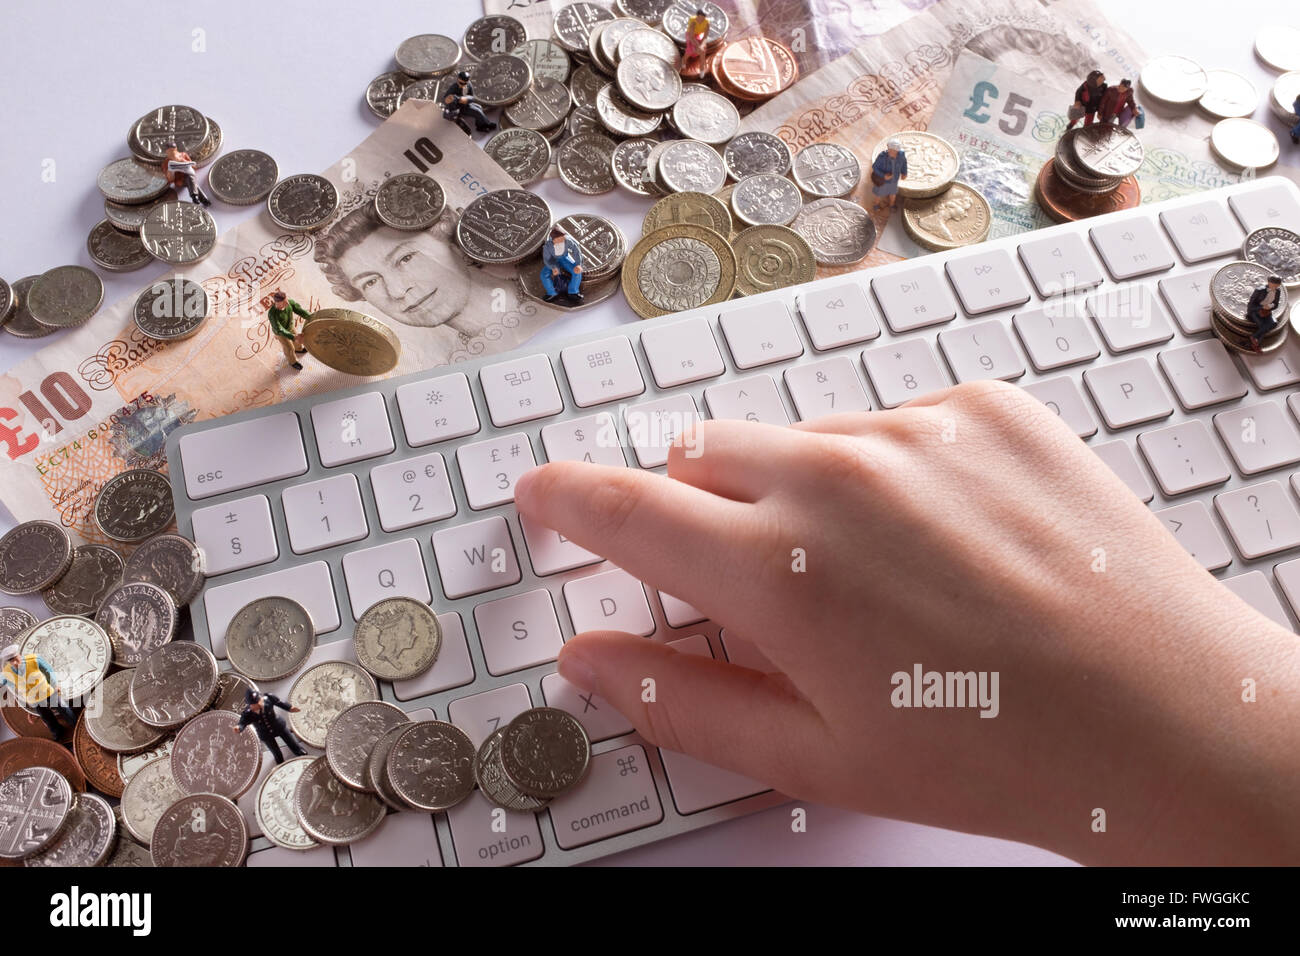 Crowd funding concept image showing how people can come together to raise funds  using the internet - Stock Image